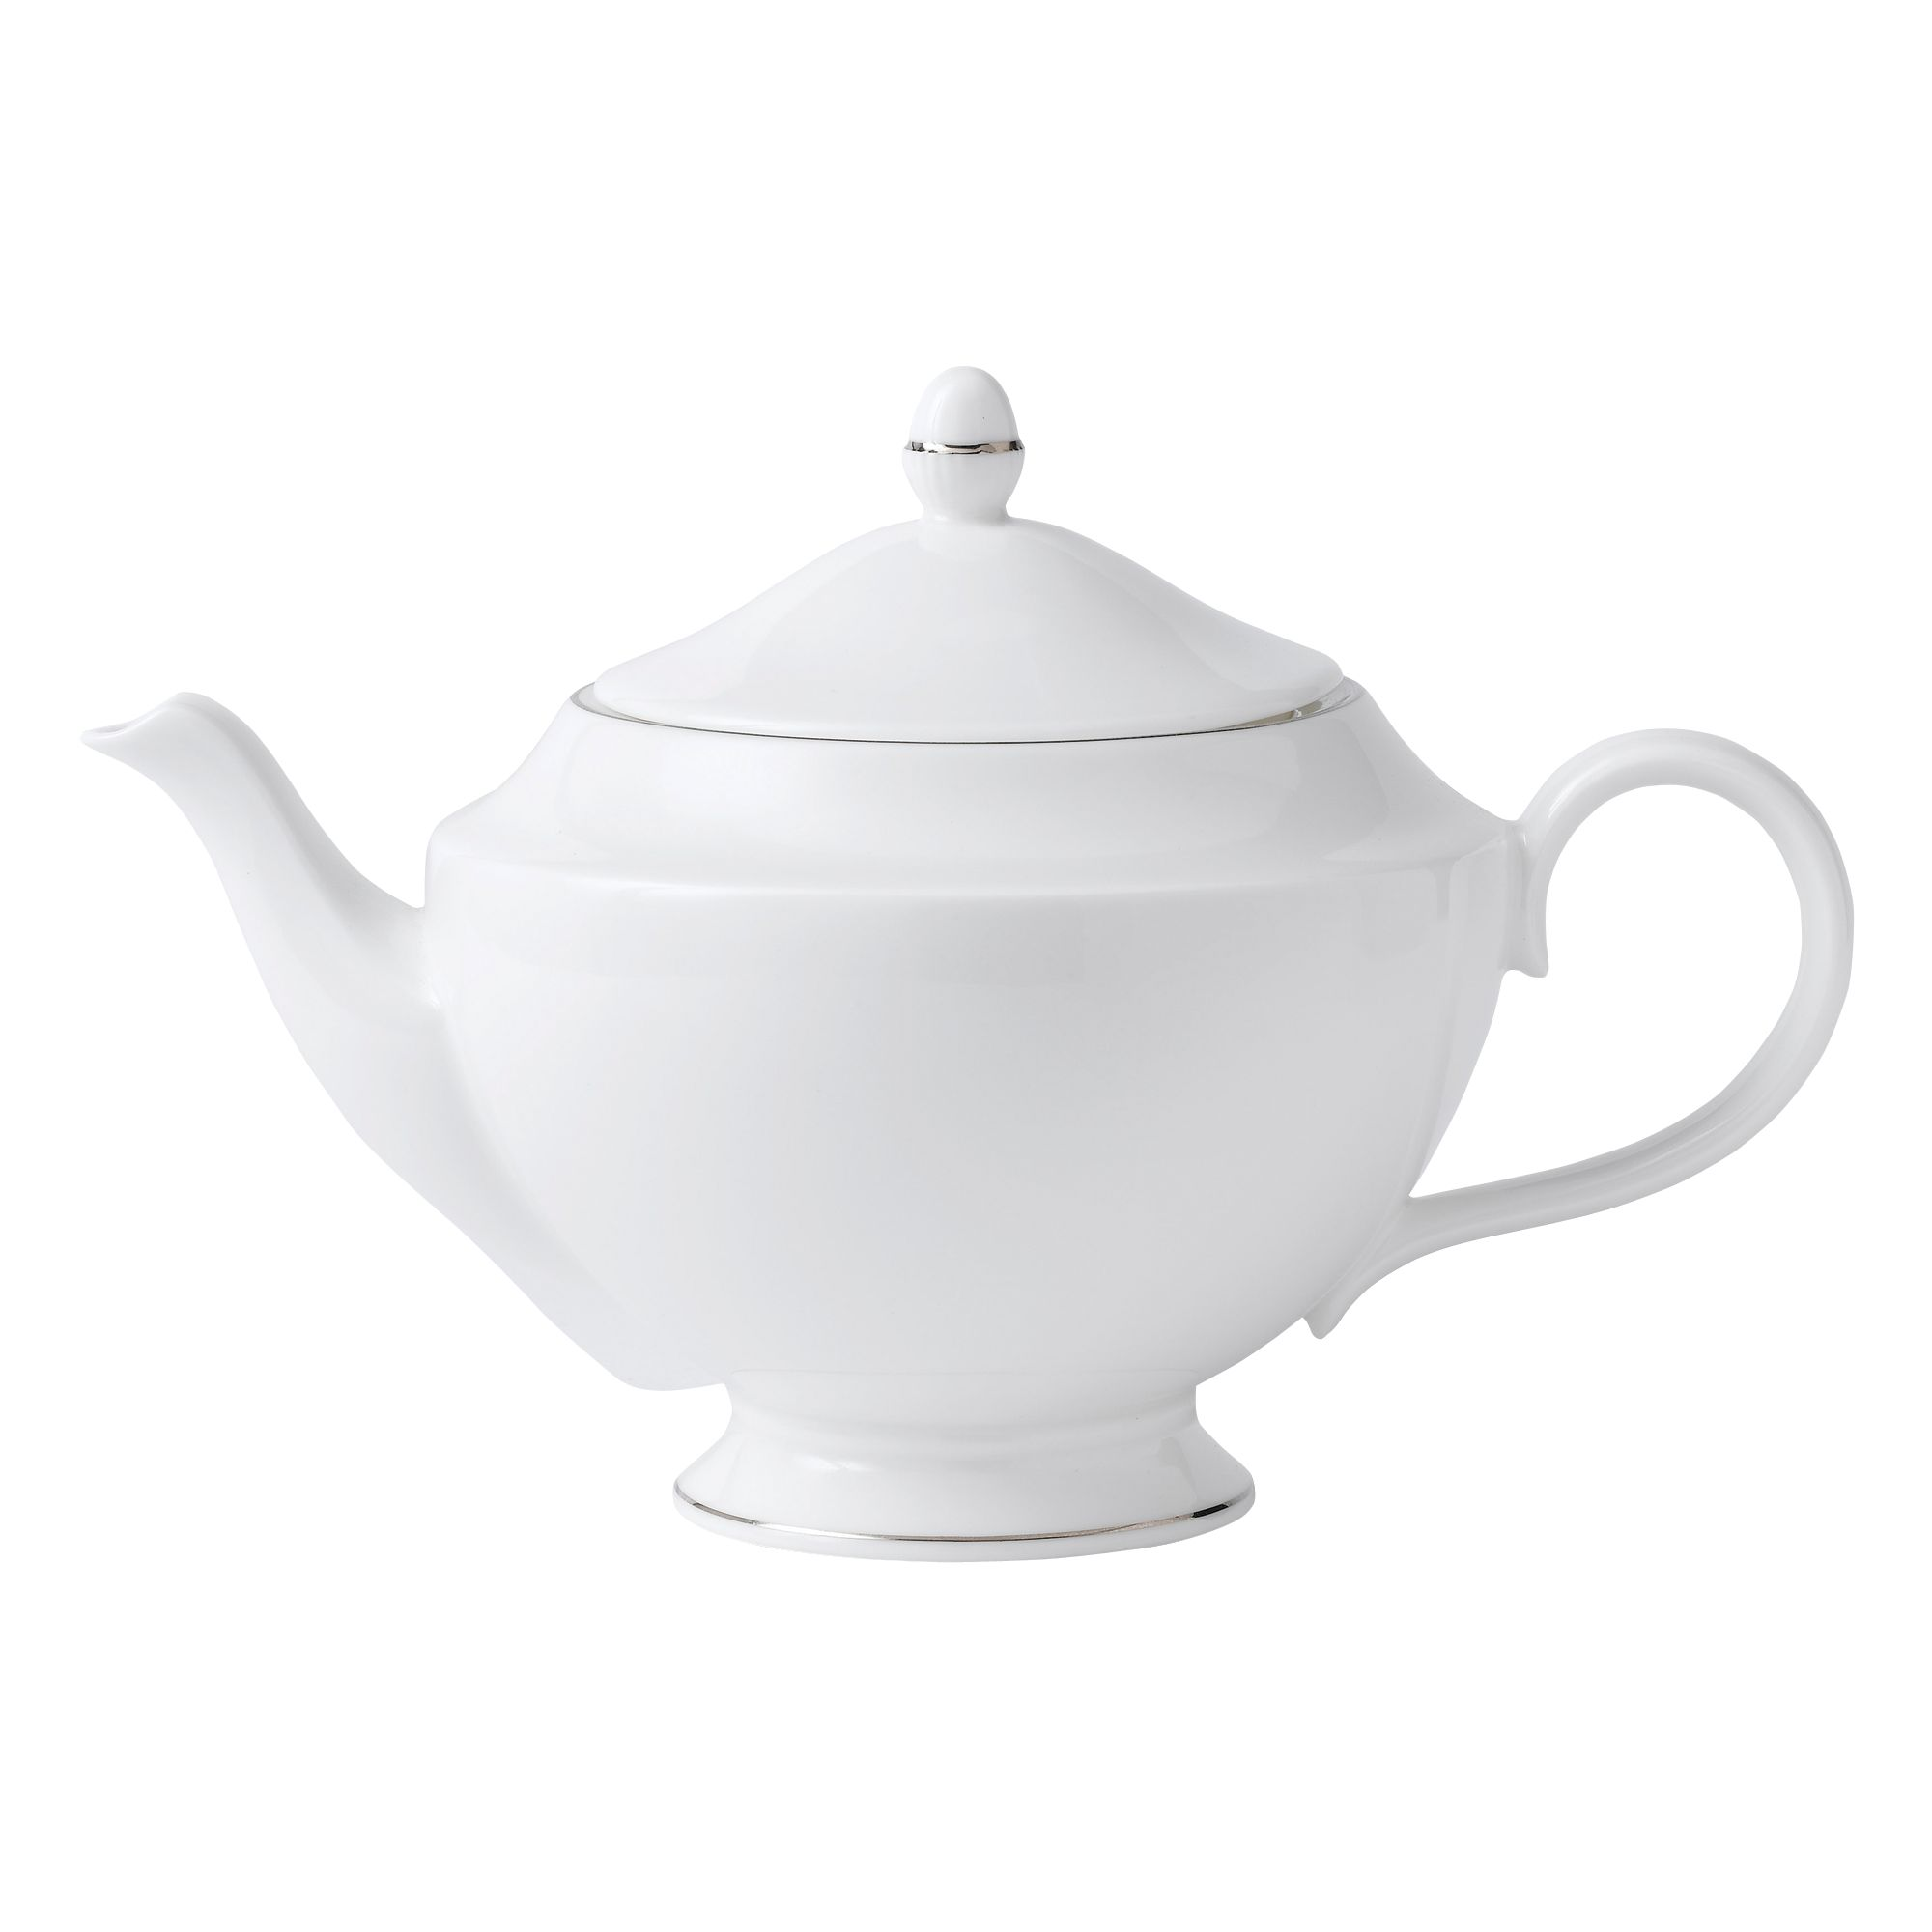 Signet platinum fine china teapot